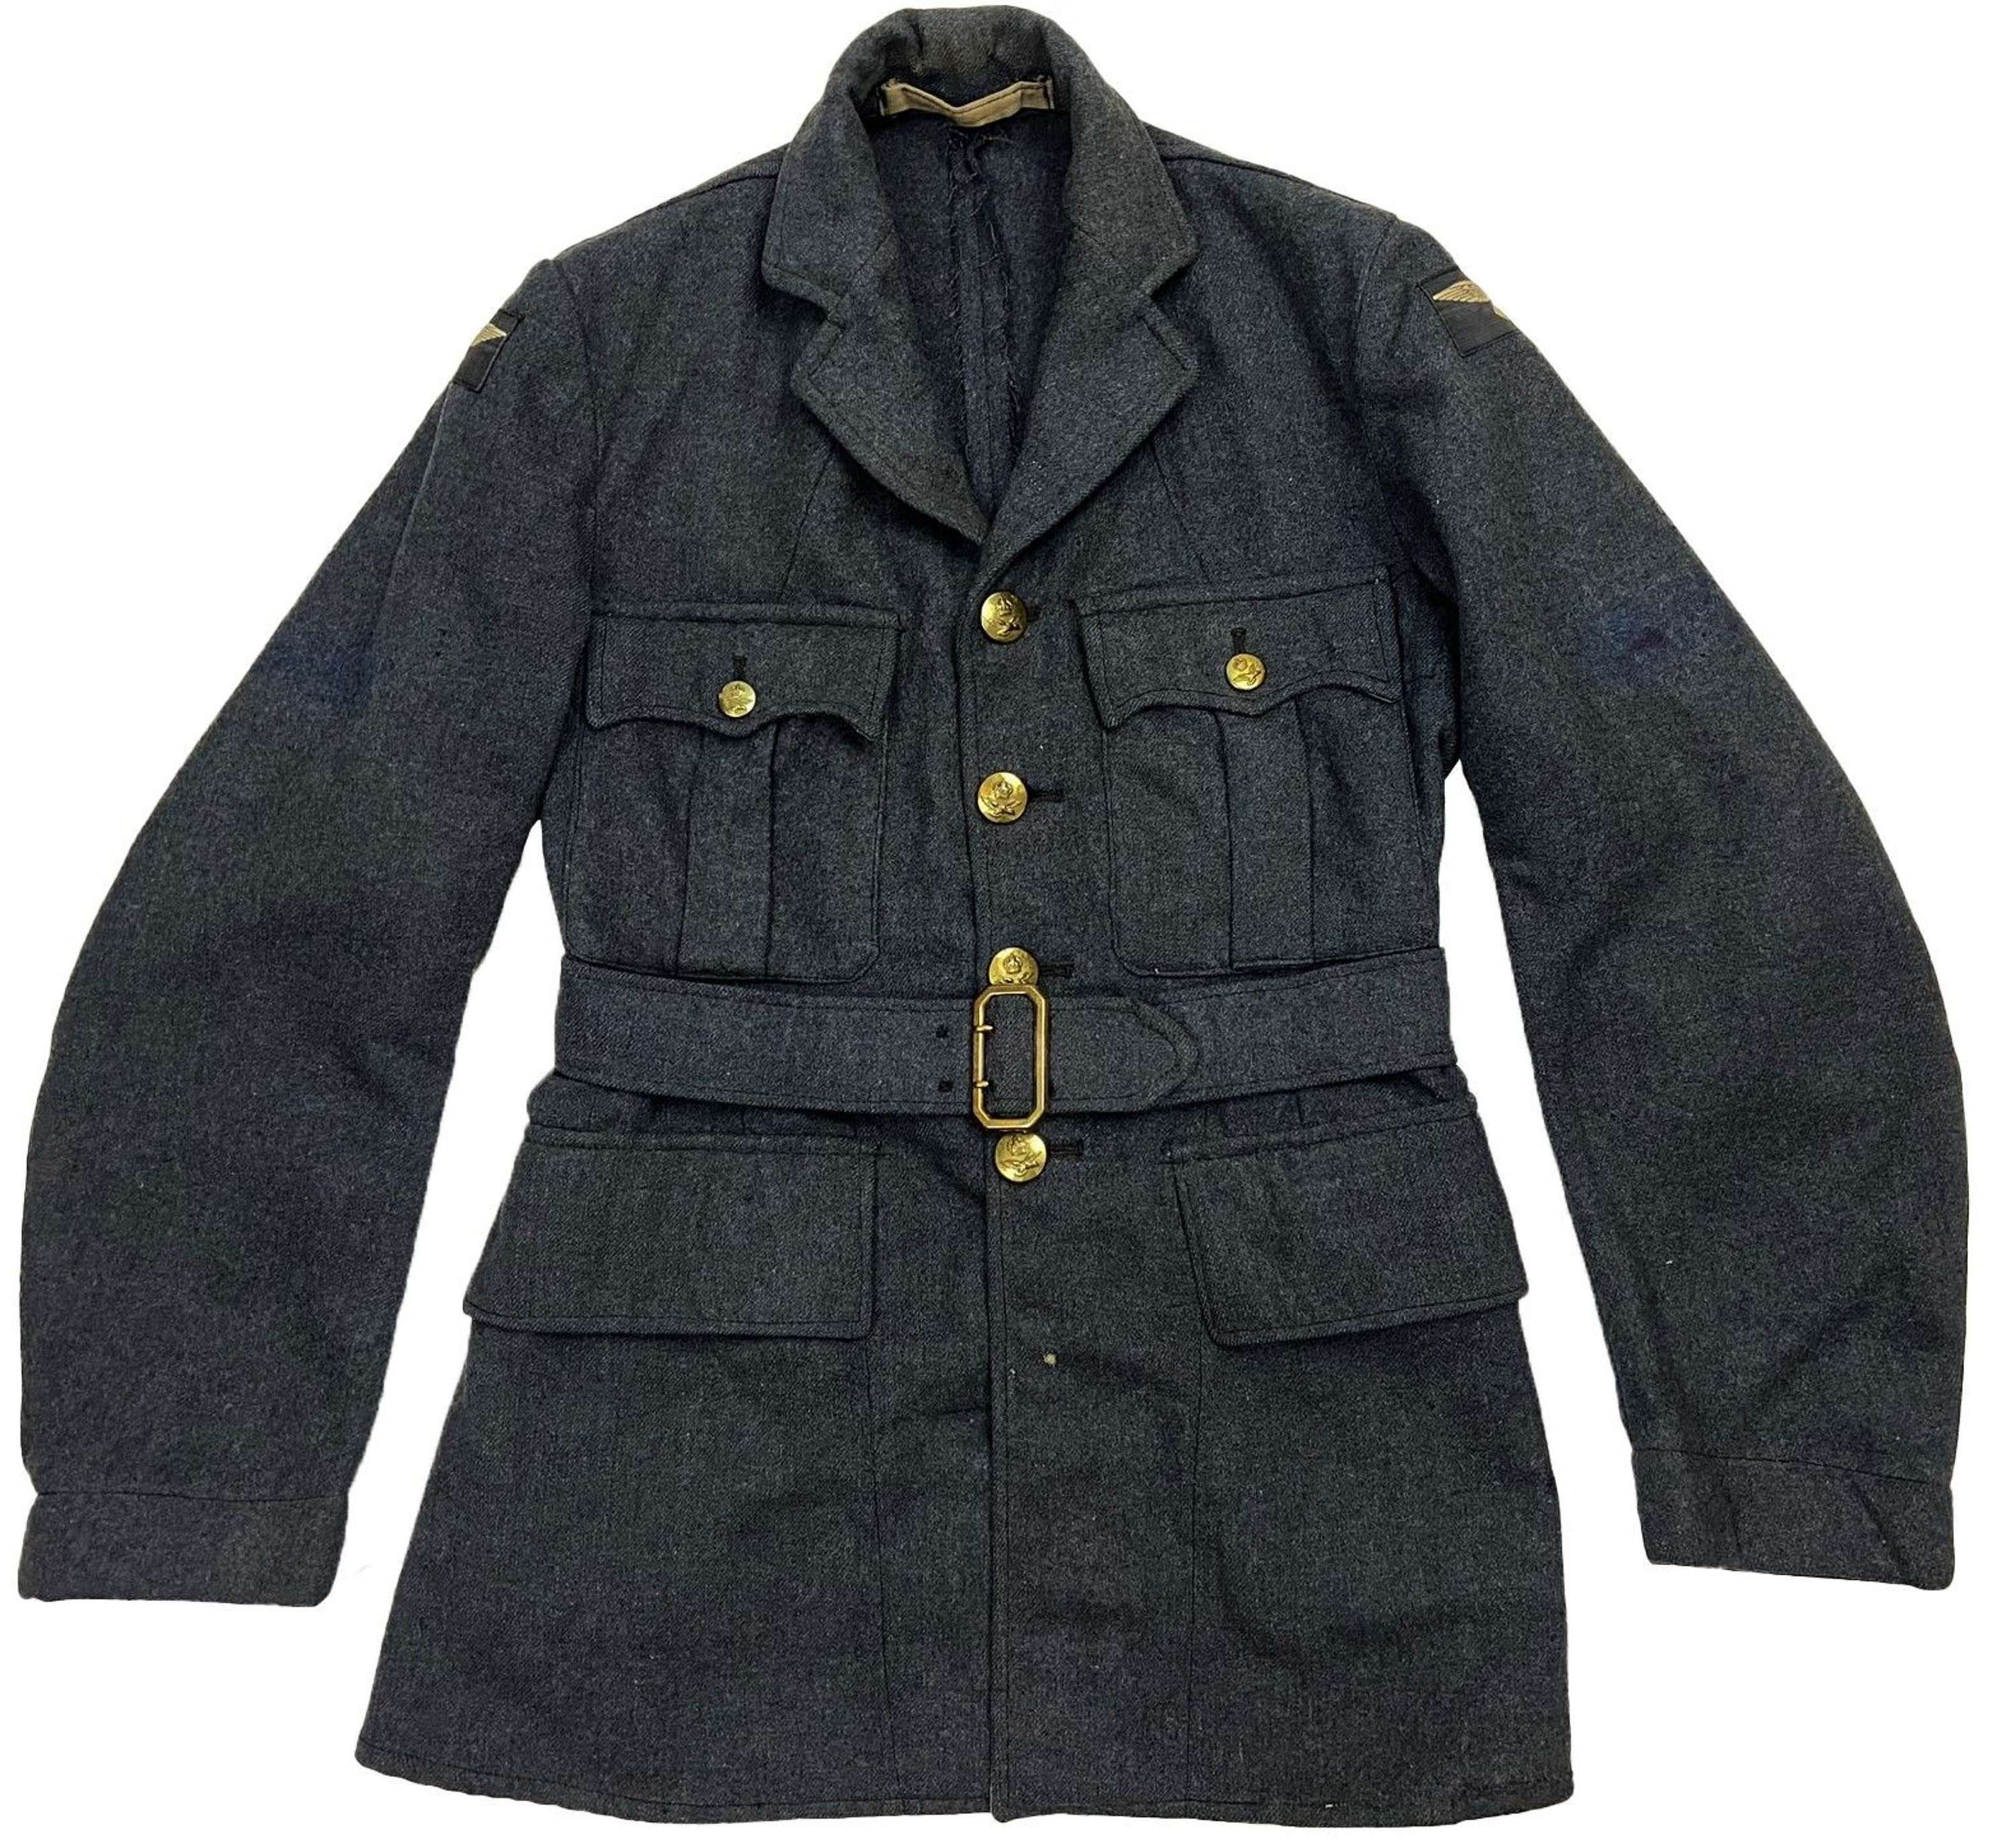 Original 1942 Dated RAF OA Tunic - Size 7